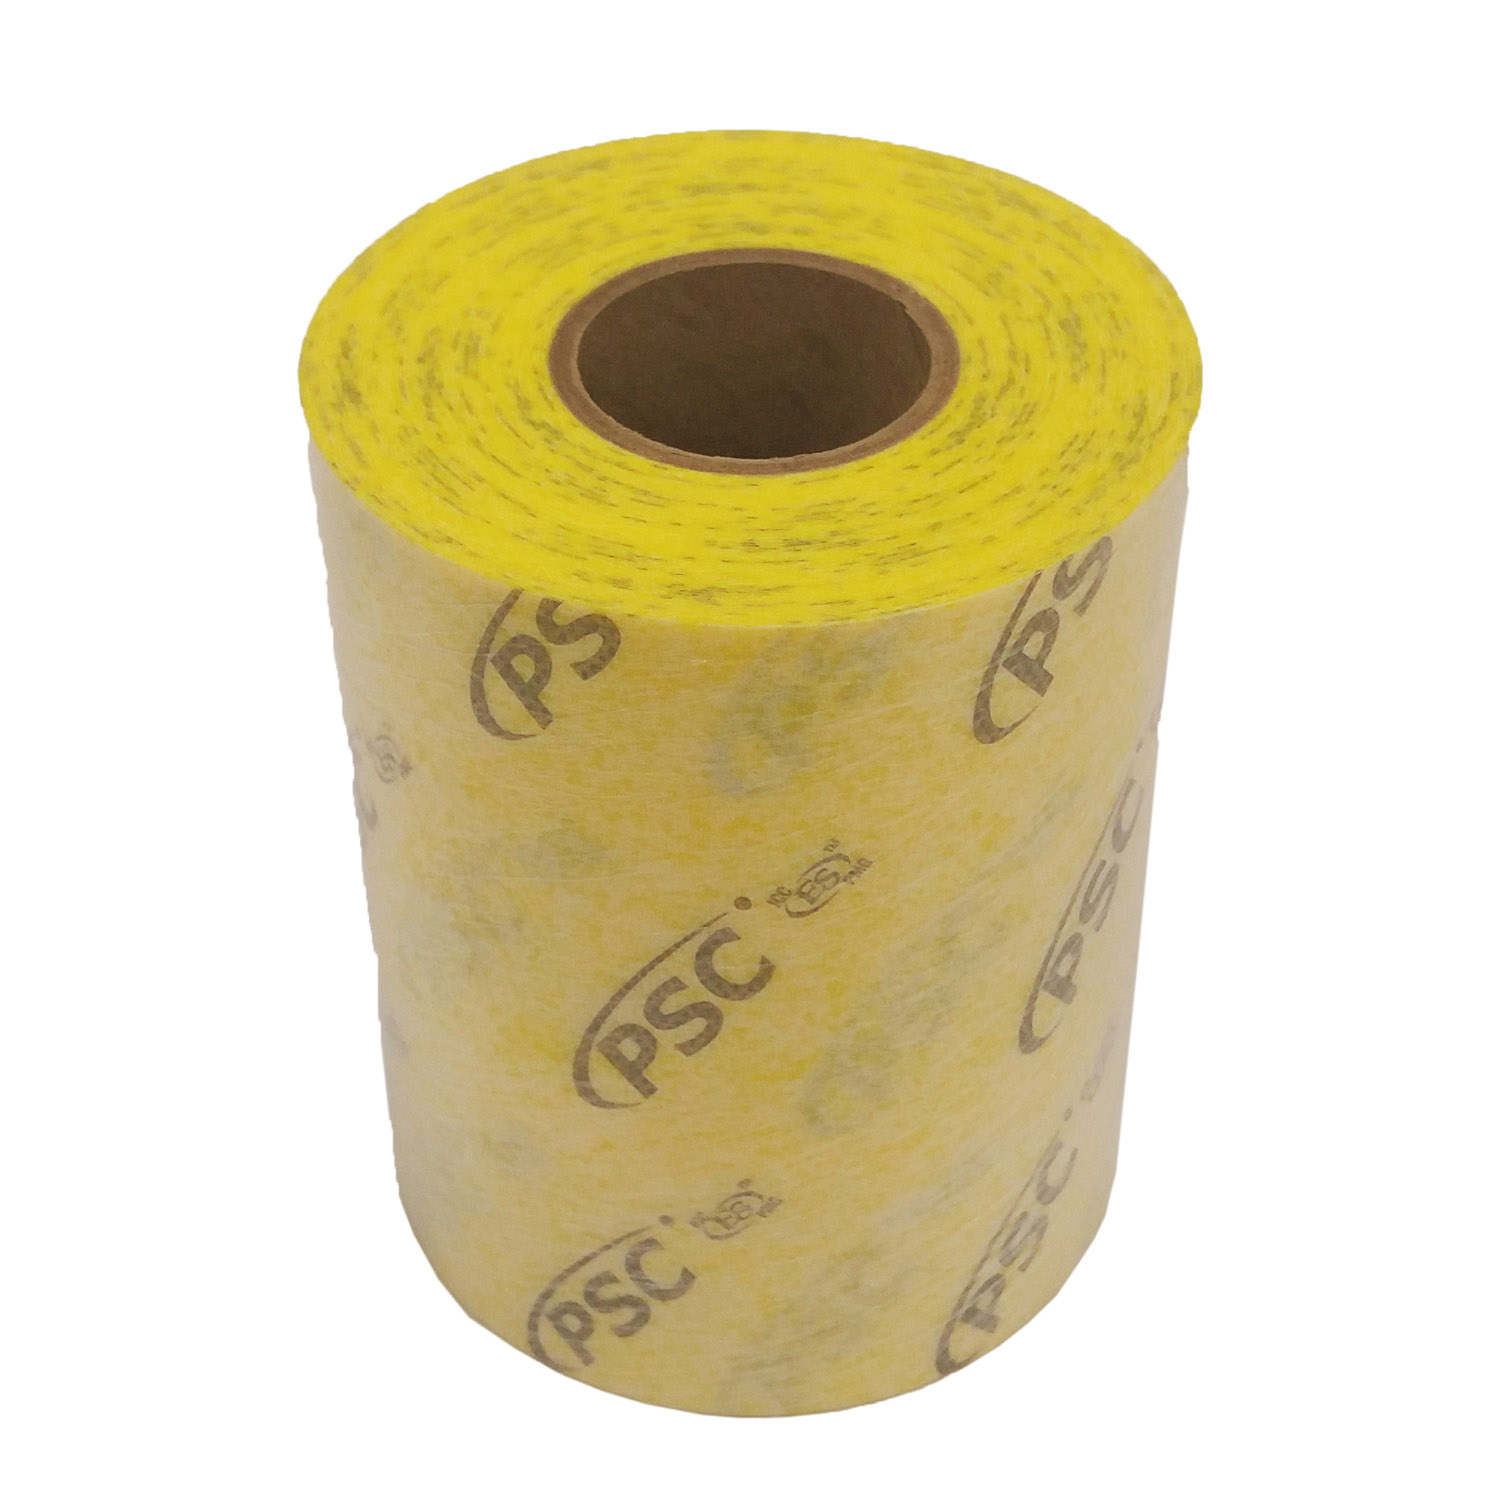 PSC Pro WP Waterproofing Seam Strips 5 Inch 41 Foot Roll by Pro-Source Center